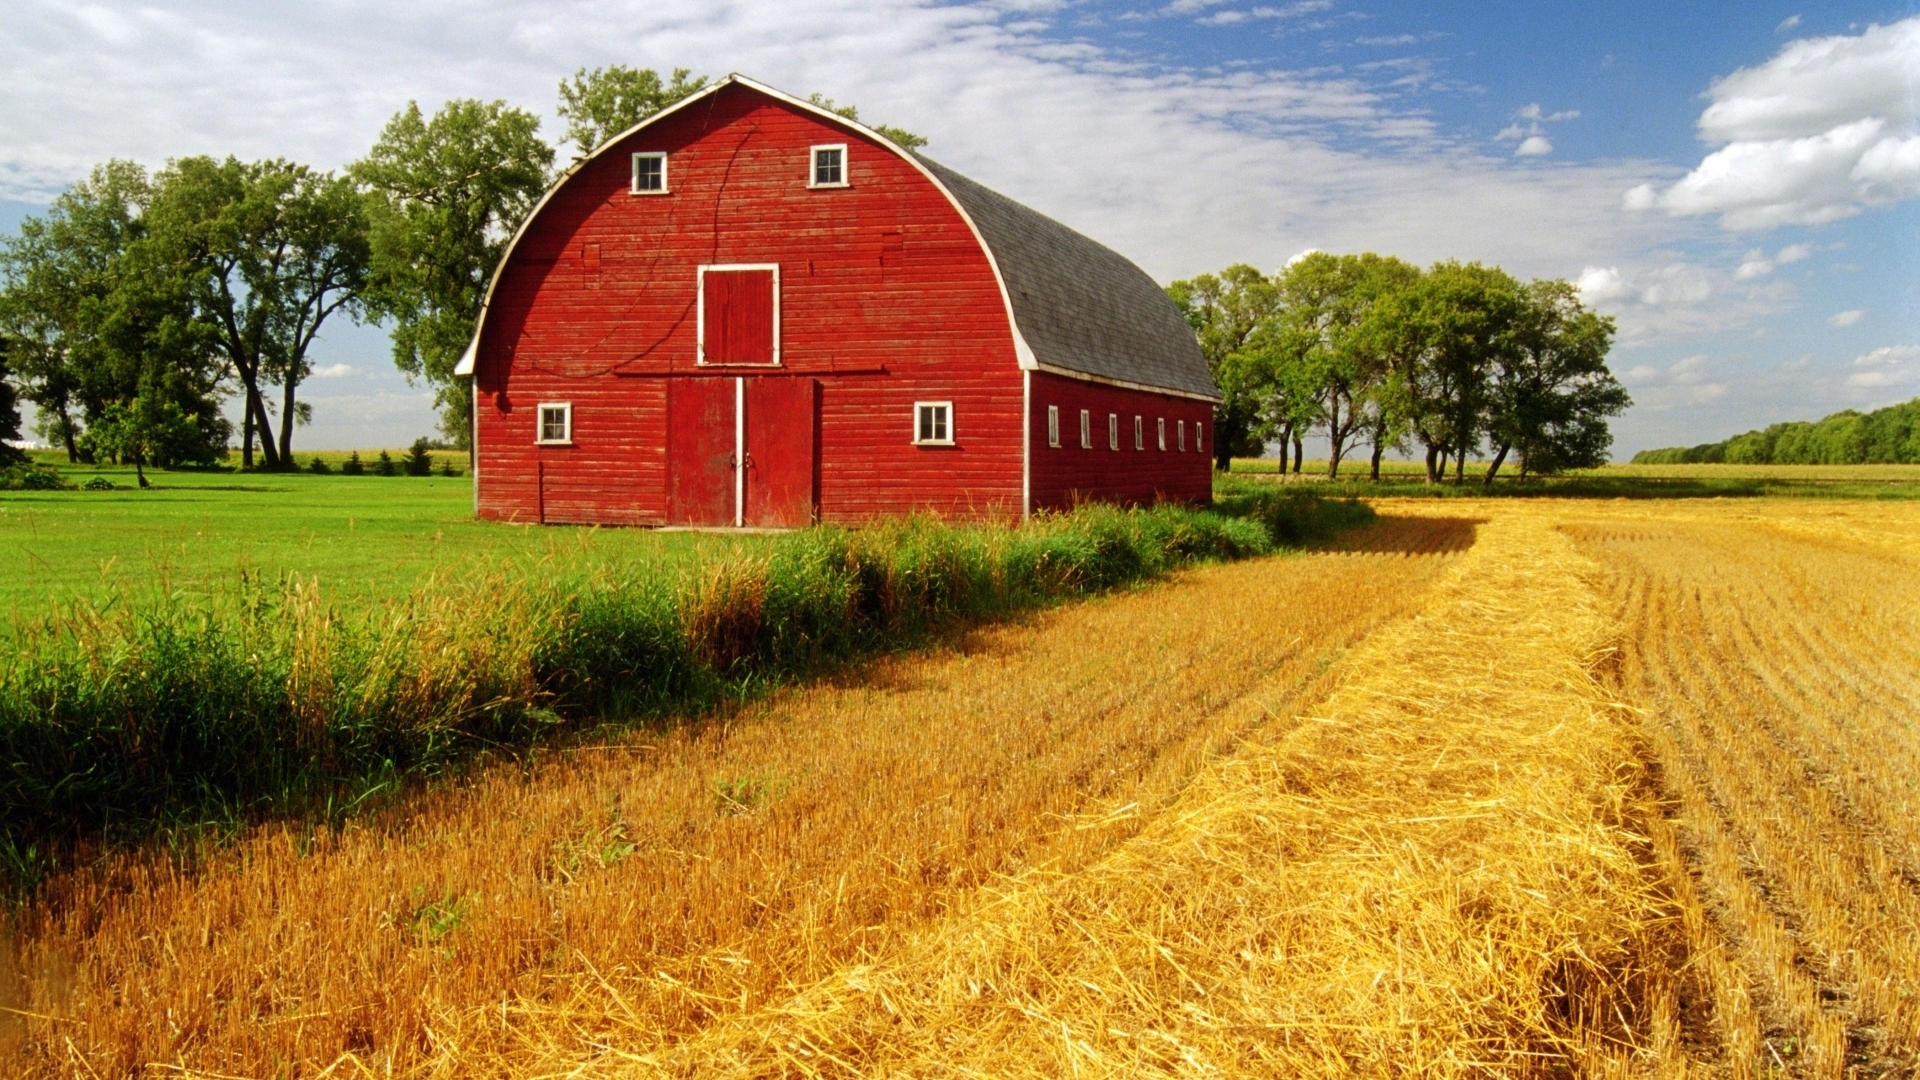 Farm background pictures 32 images 1920x1080 farm landscapes fields crop grass sky clouds wallpaper background voltagebd Gallery